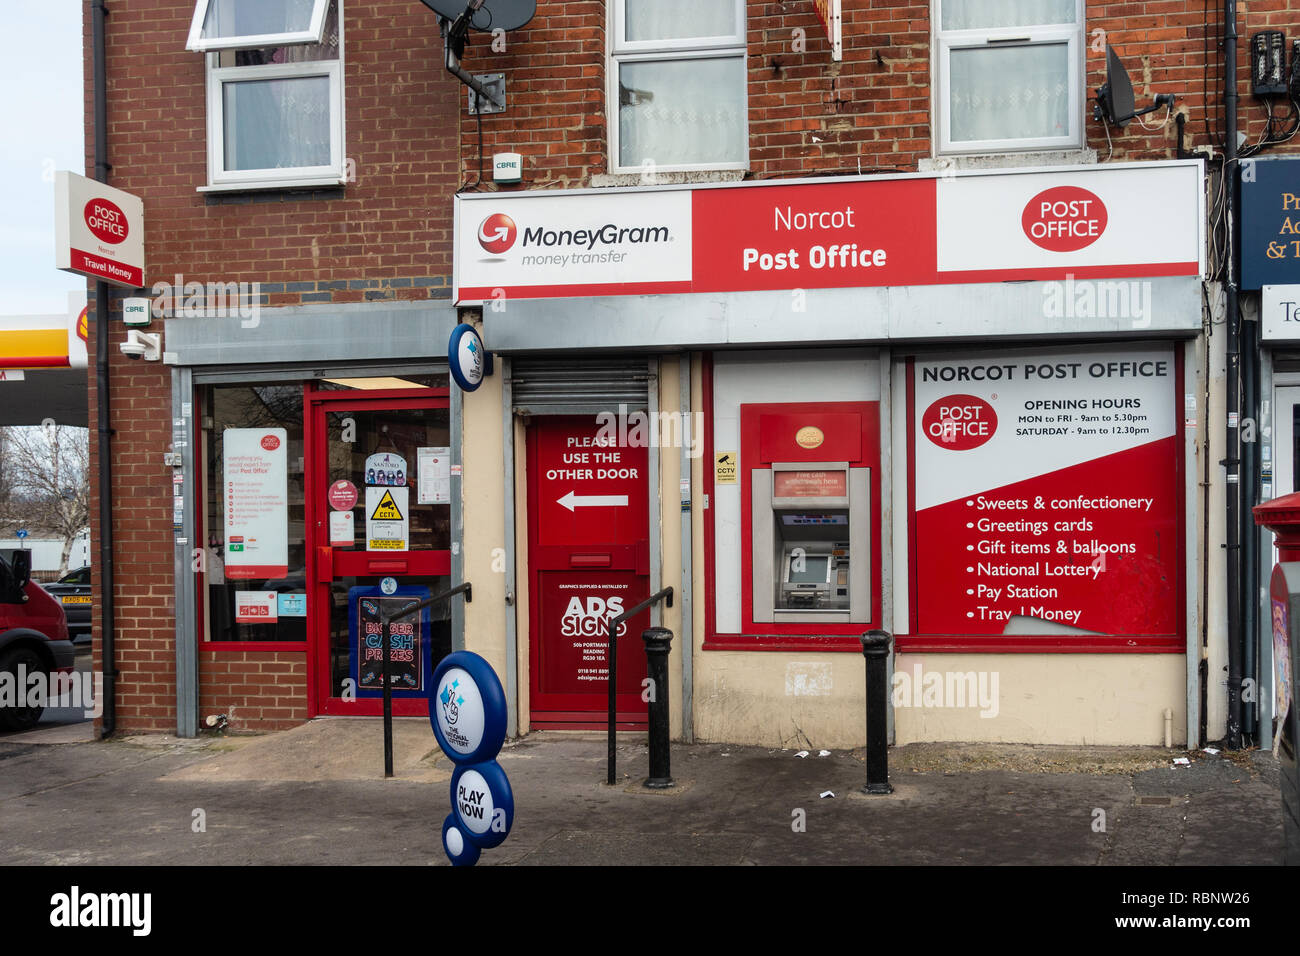 The local post Office on Oxford Road, Norcot, Reading, Berkshire, UK. - Stock Image